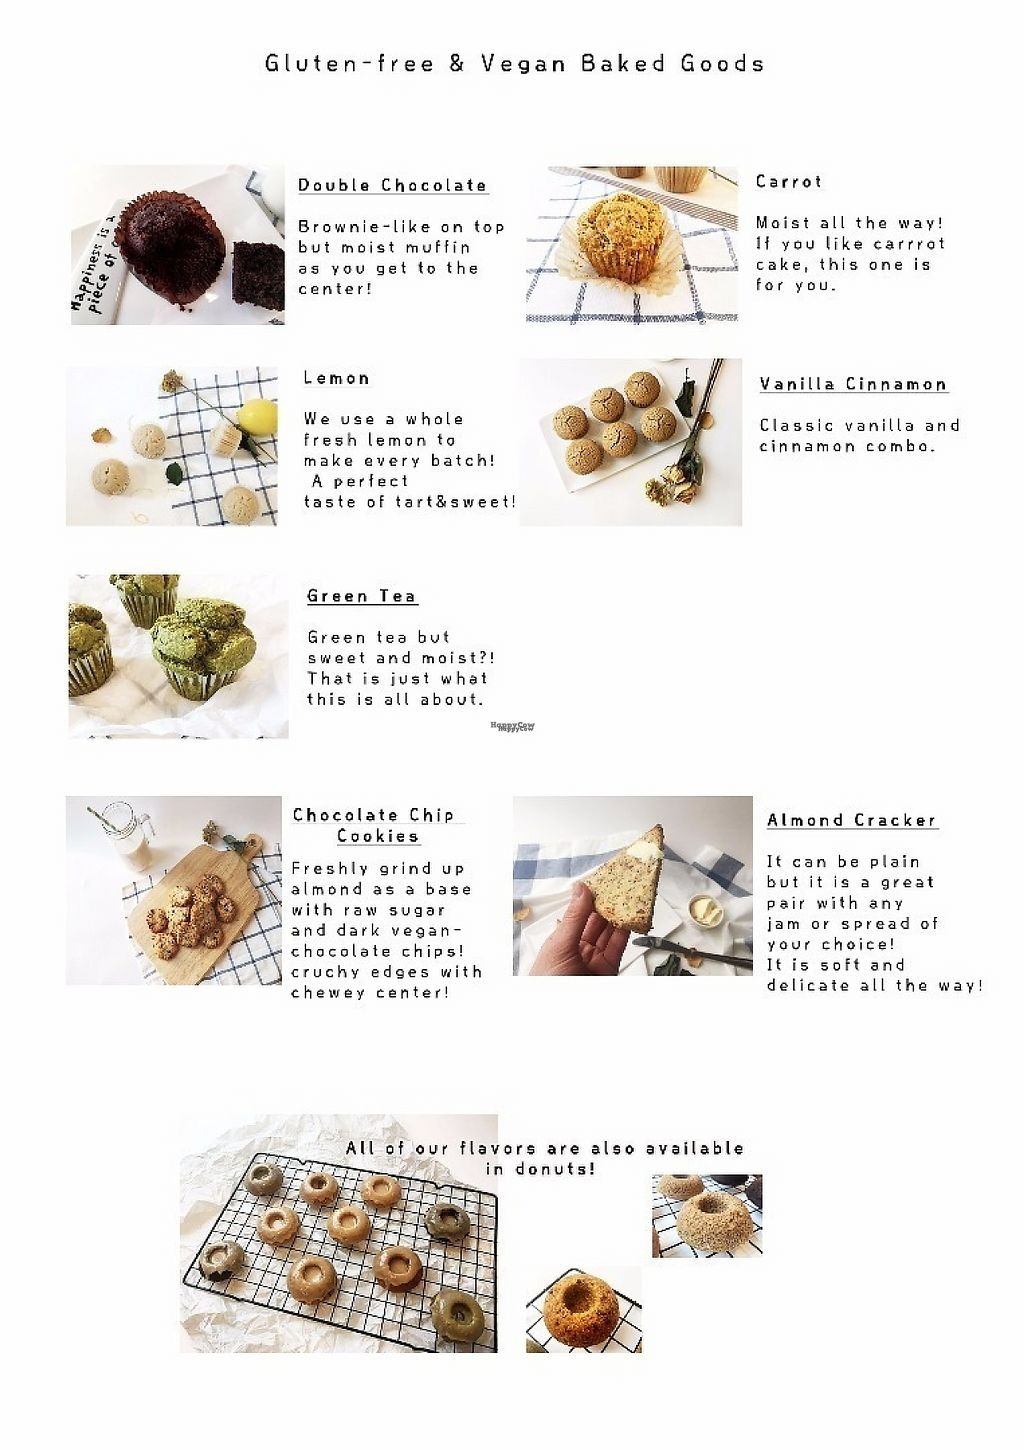 """Photo of Sunny's GF Sweets  by <a href=""""/members/profile/seongrye7"""">seongrye7</a> <br/>Vegan Menu!  <br/> January 23, 2017  - <a href='/contact/abuse/image/85908/215237'>Report</a>"""